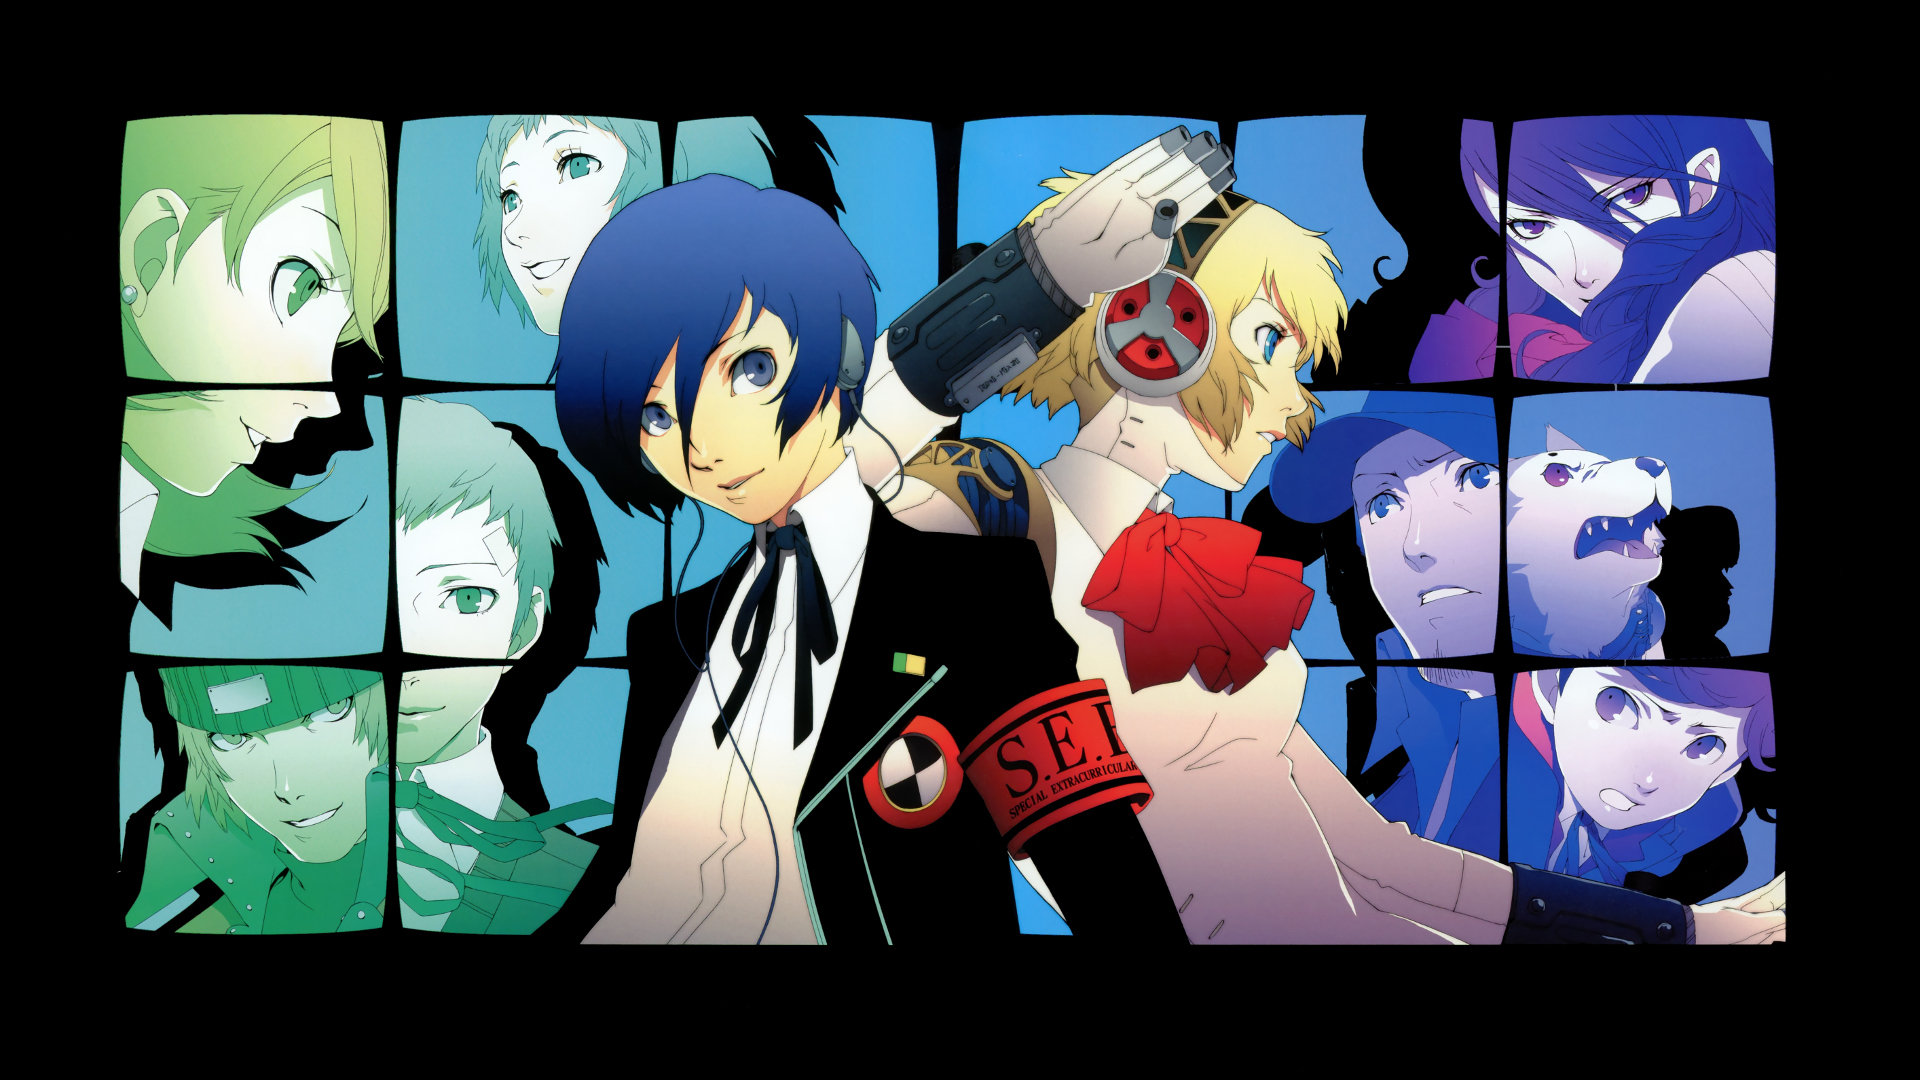 Download full hd Persona 3 desktop background ID:100286 for free